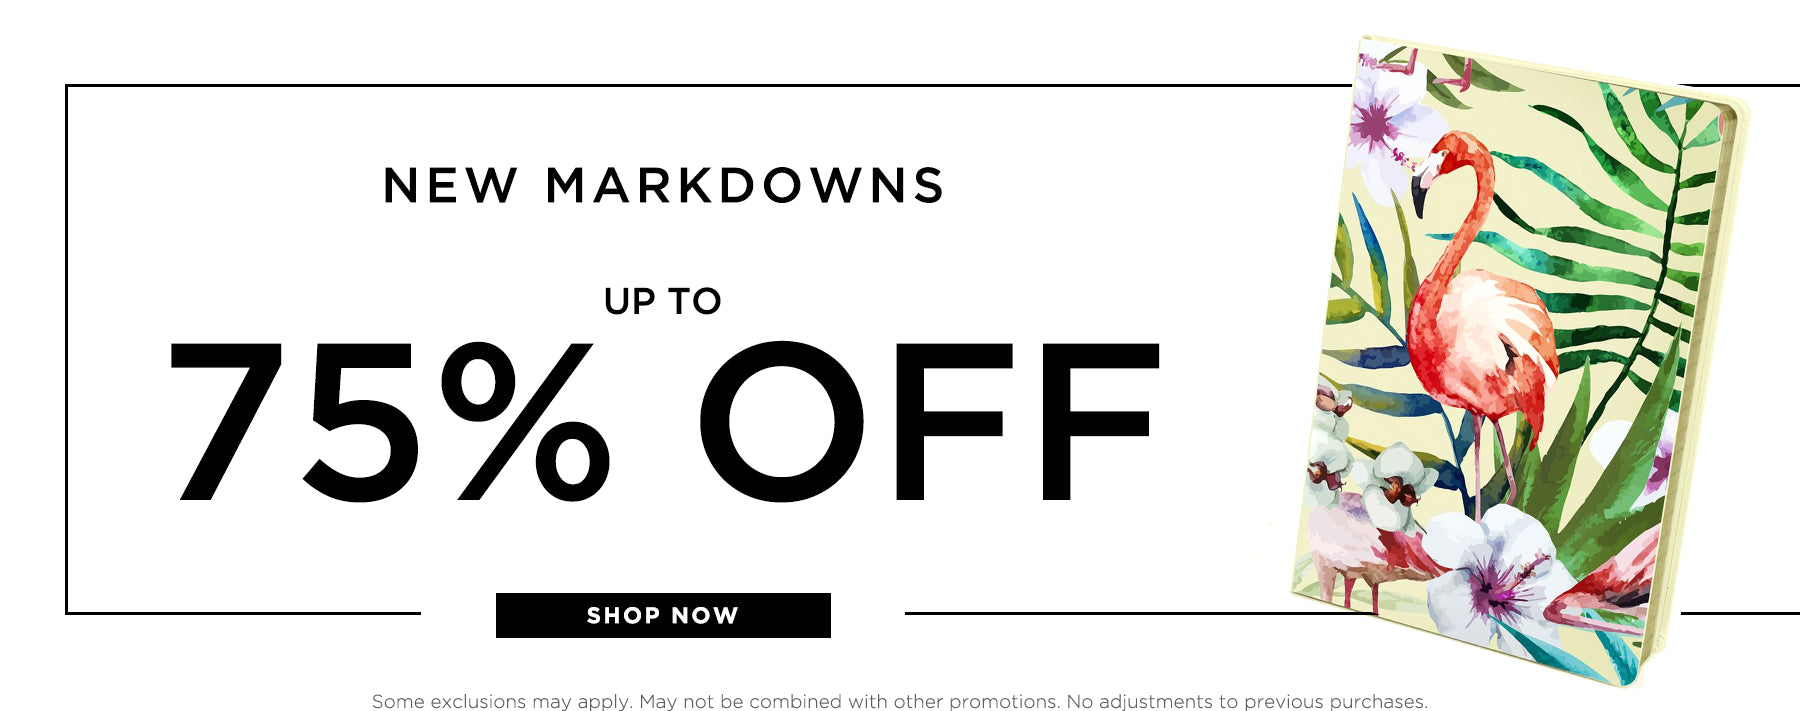 New markdowns, up to 70% off. Shop now.